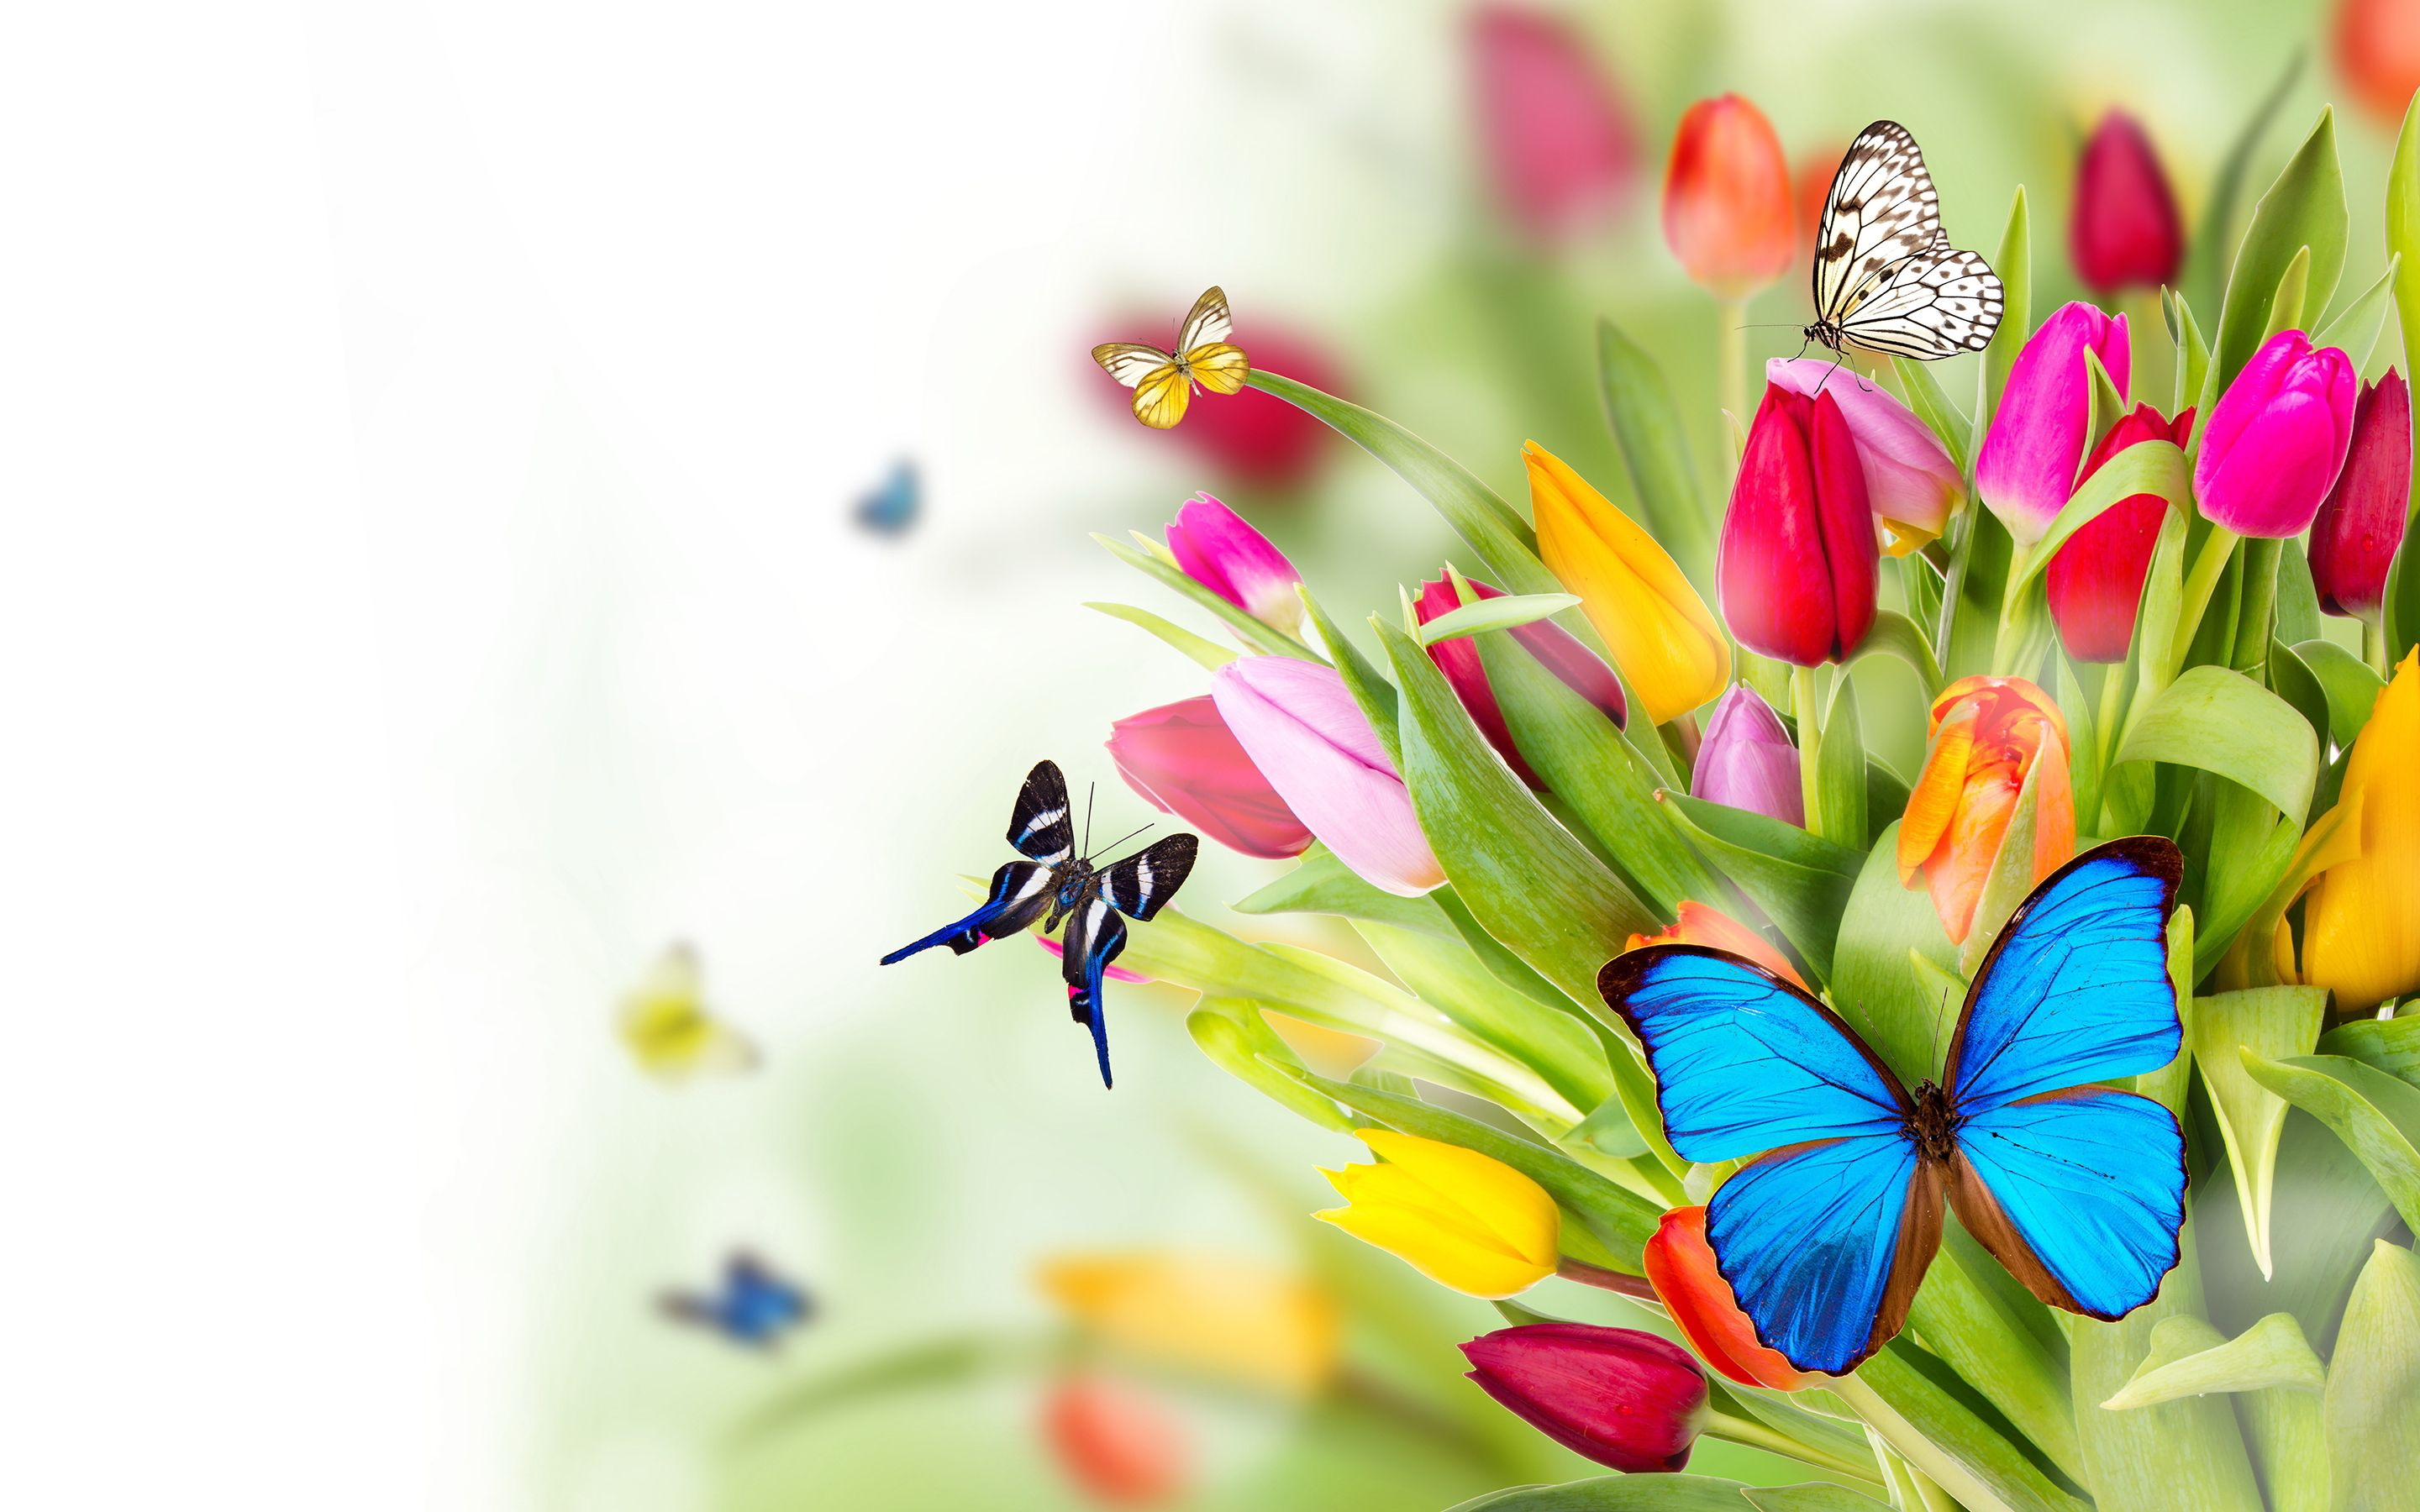 Beautiful Pictures Of Flowers And Butterflies Birds Flowers Butterflies Wallpapers Pictures Photos Images